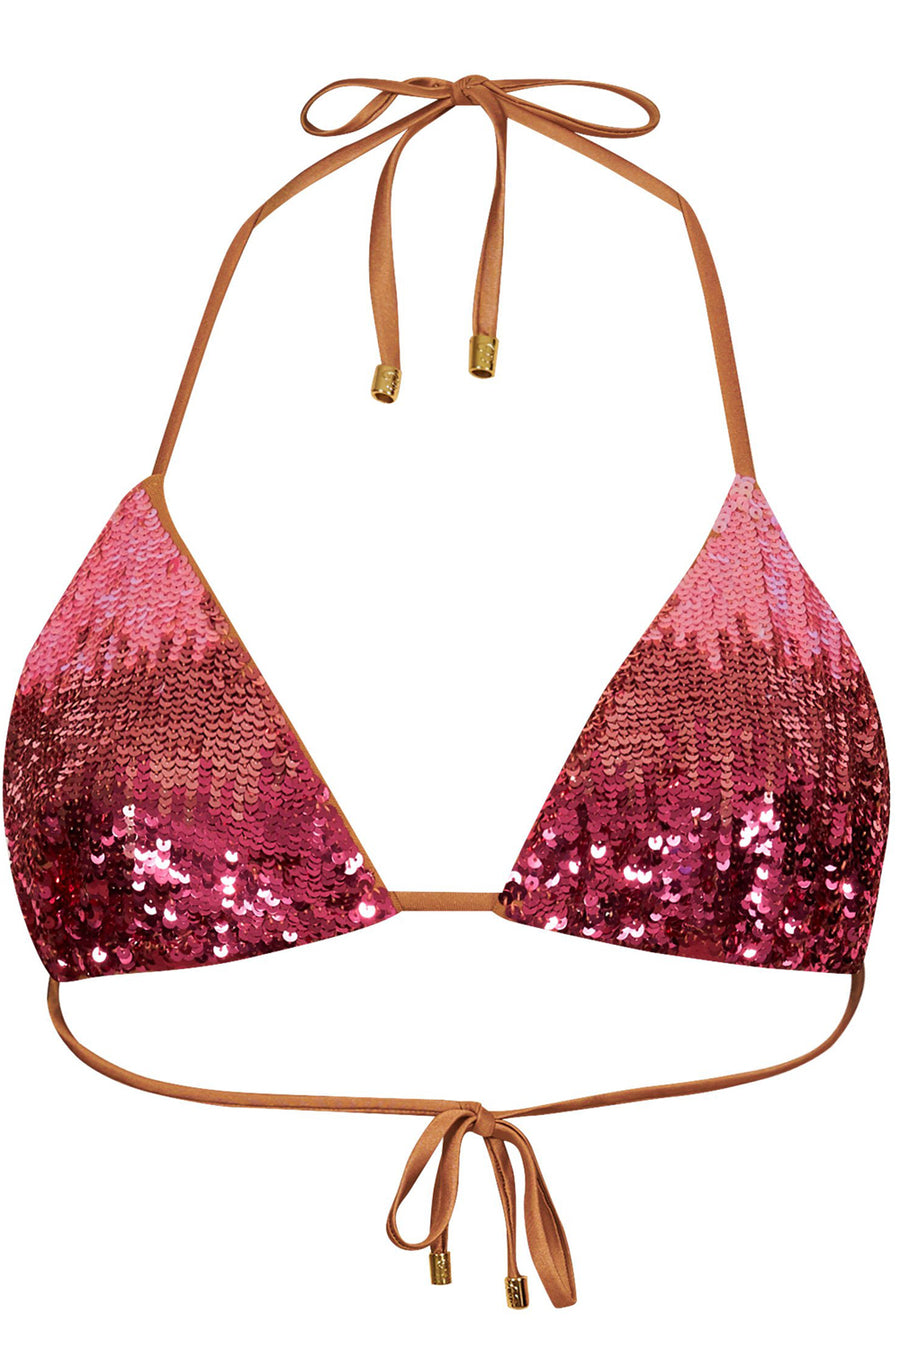 Beach Bunny Ariel Triangle Top Pink Ombre